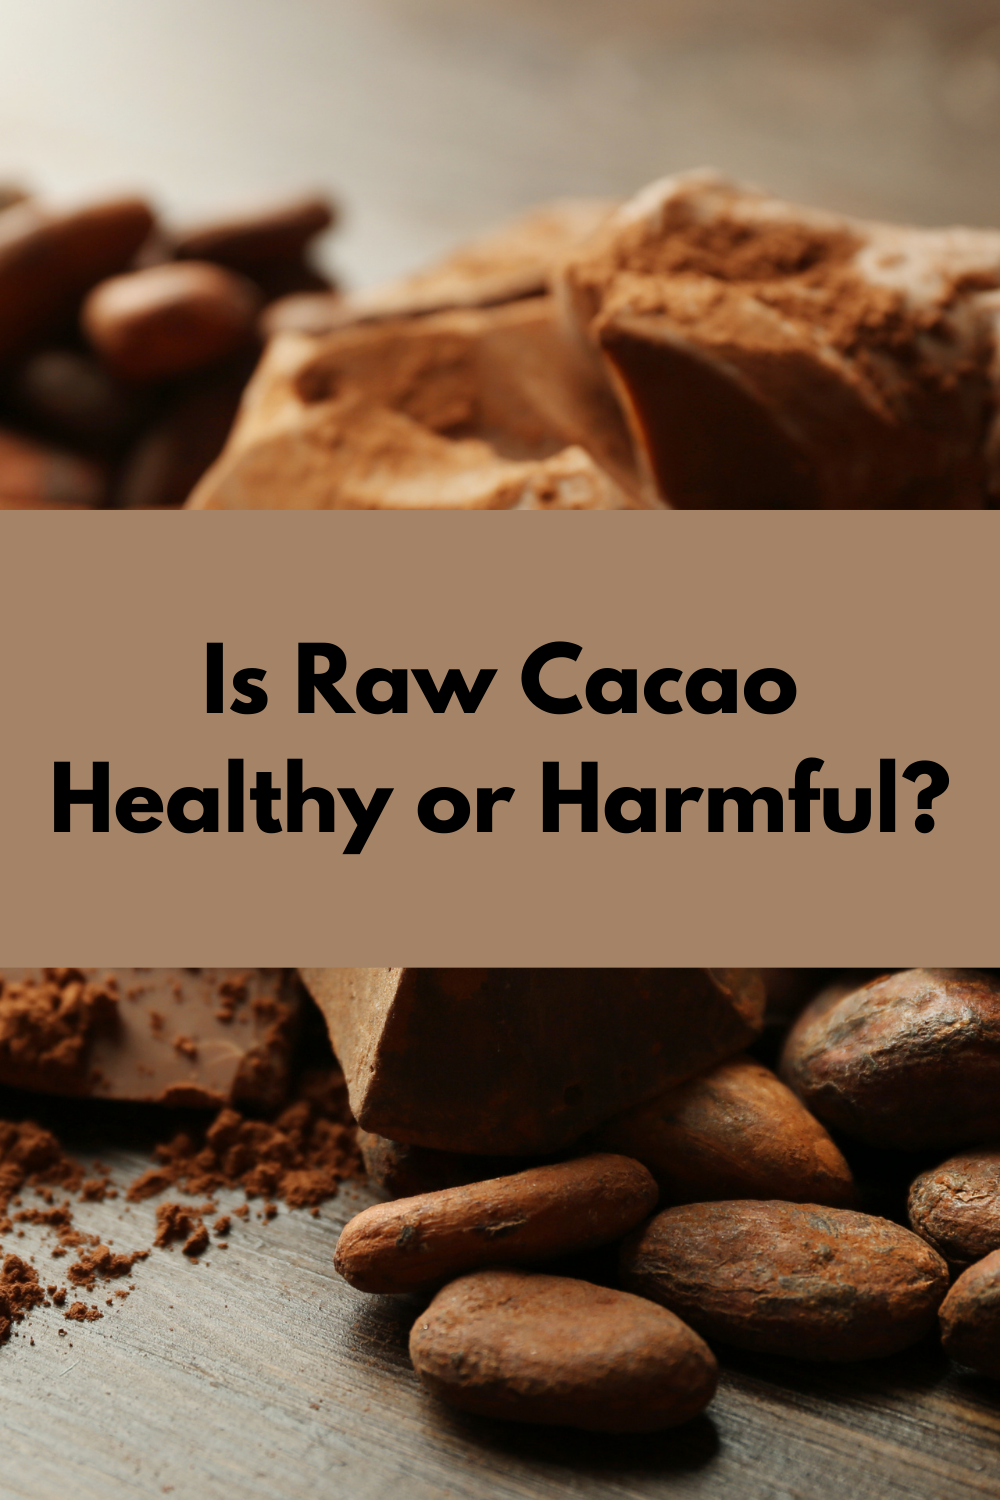 is raw cacao harmful or healthy?